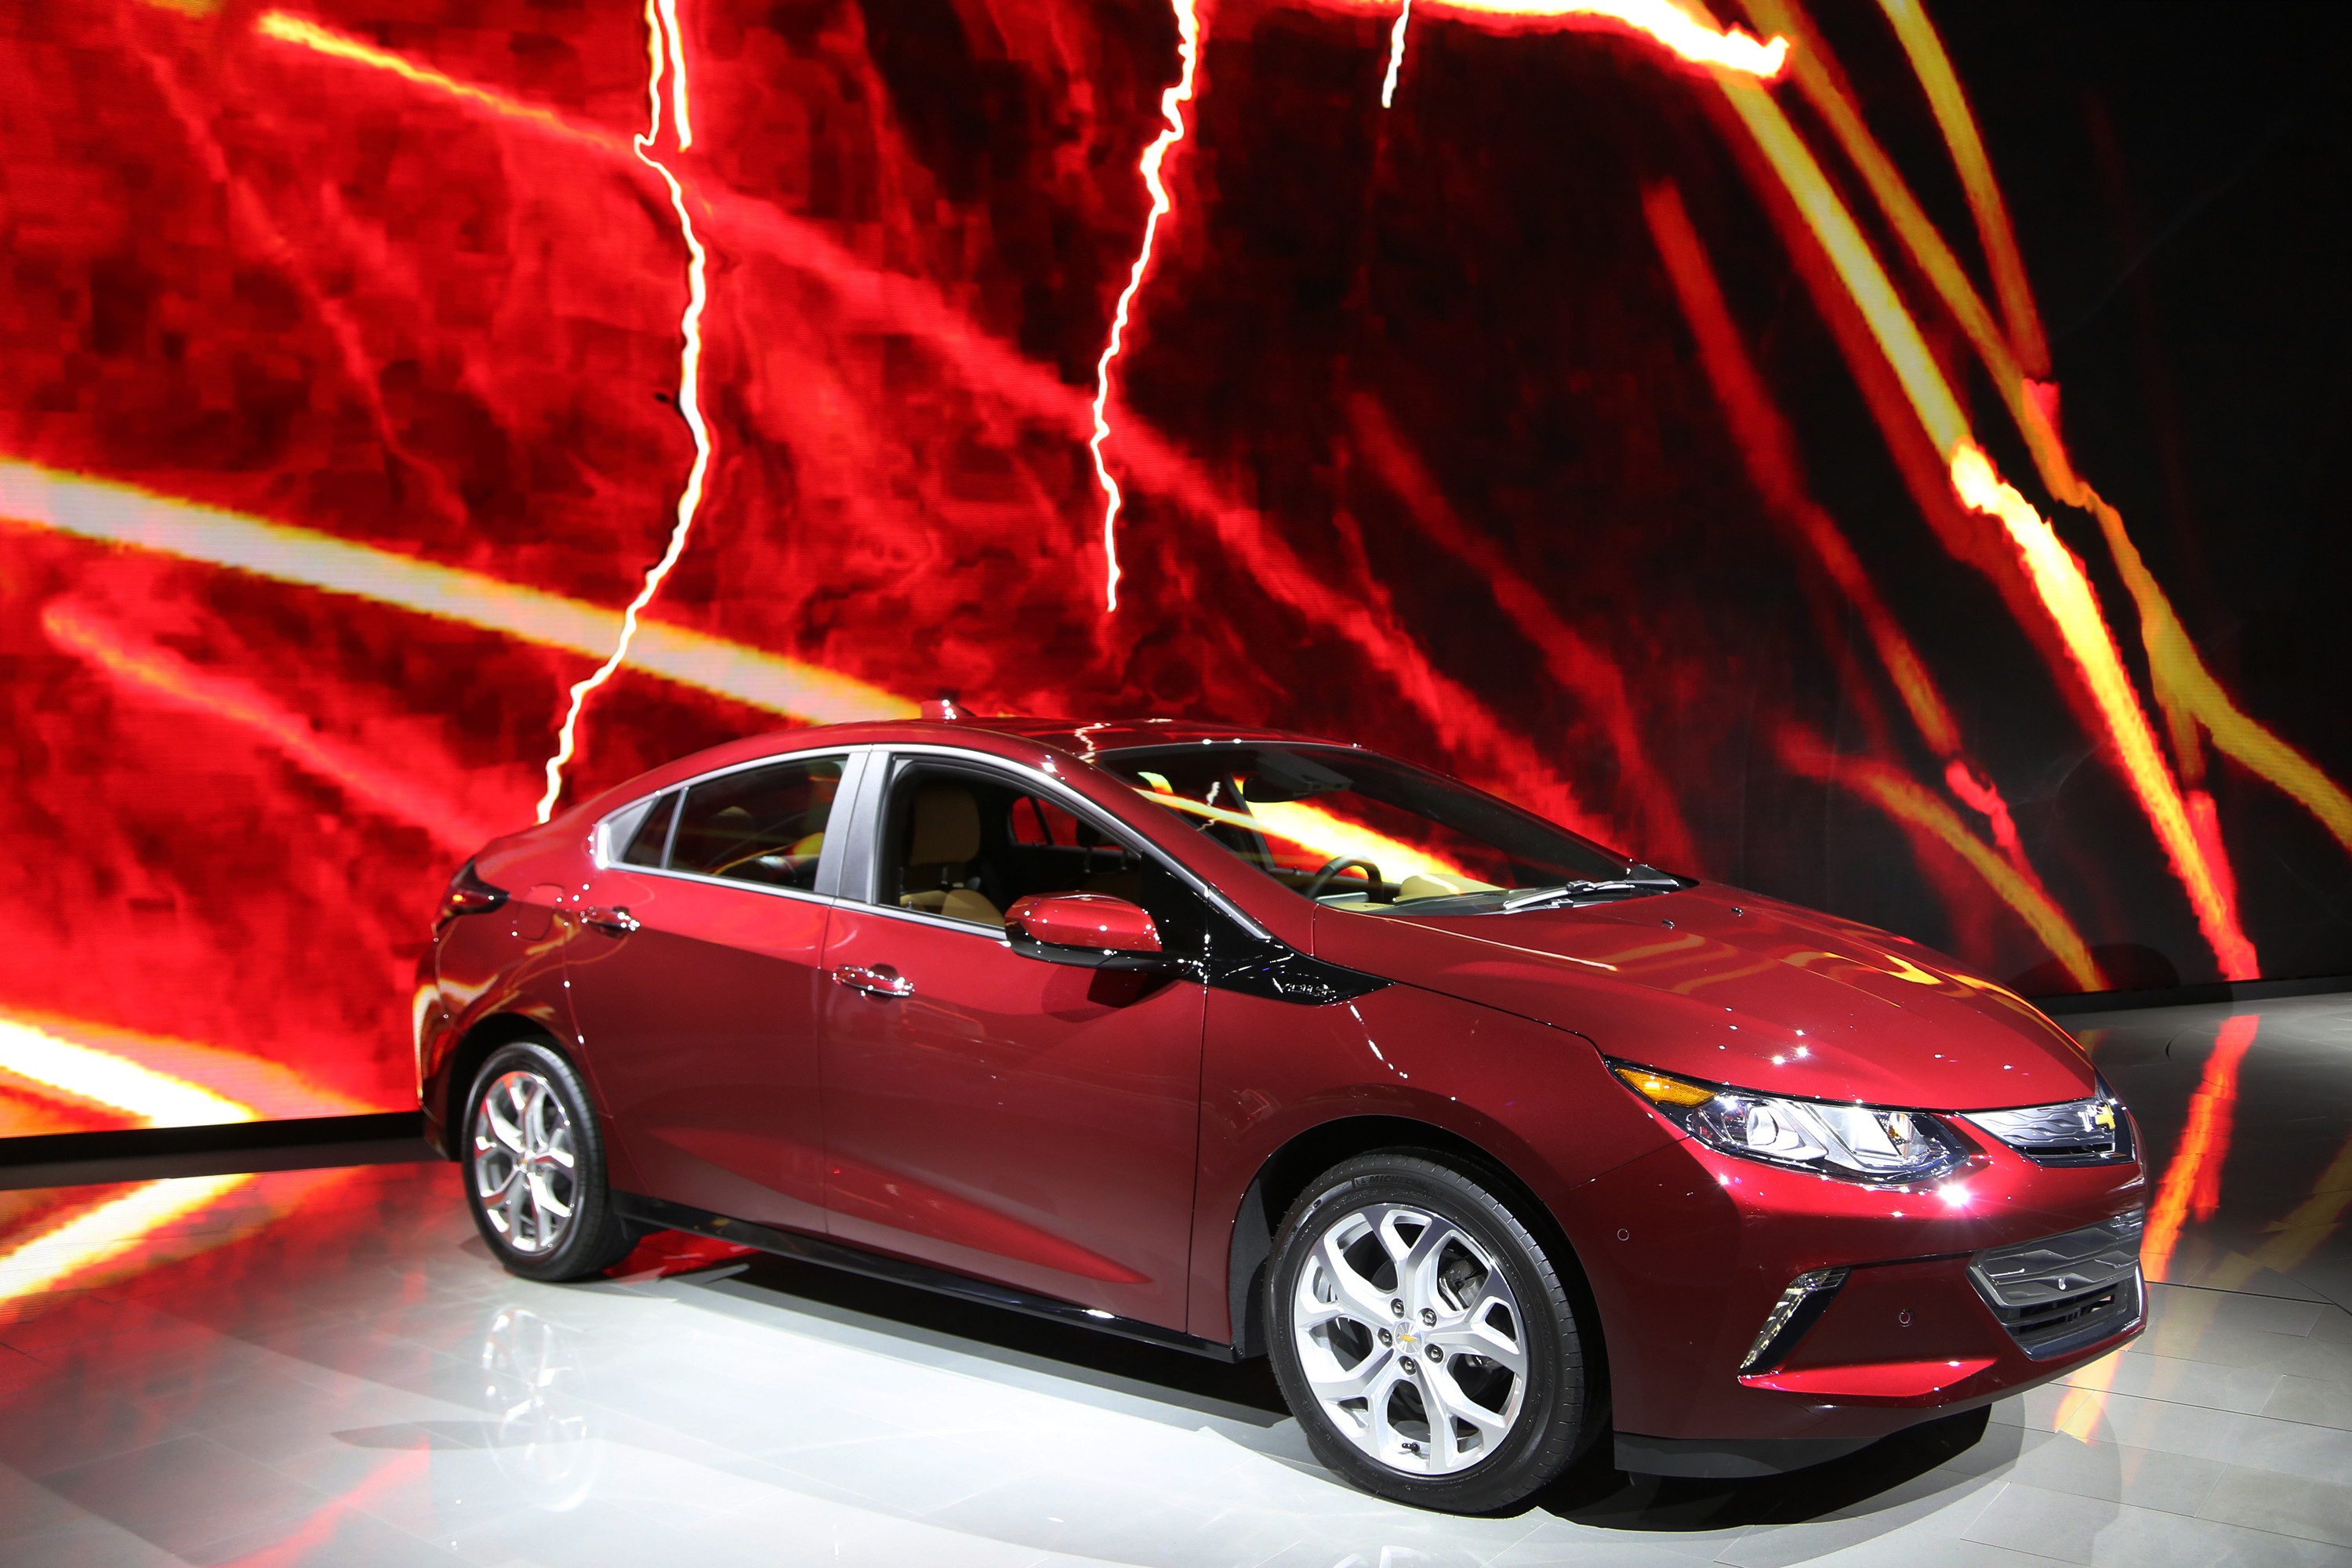 volt on display at the 2015 los angeles auto show on november 19 2015 in los angeles california the volt is the best selling electric car in canada